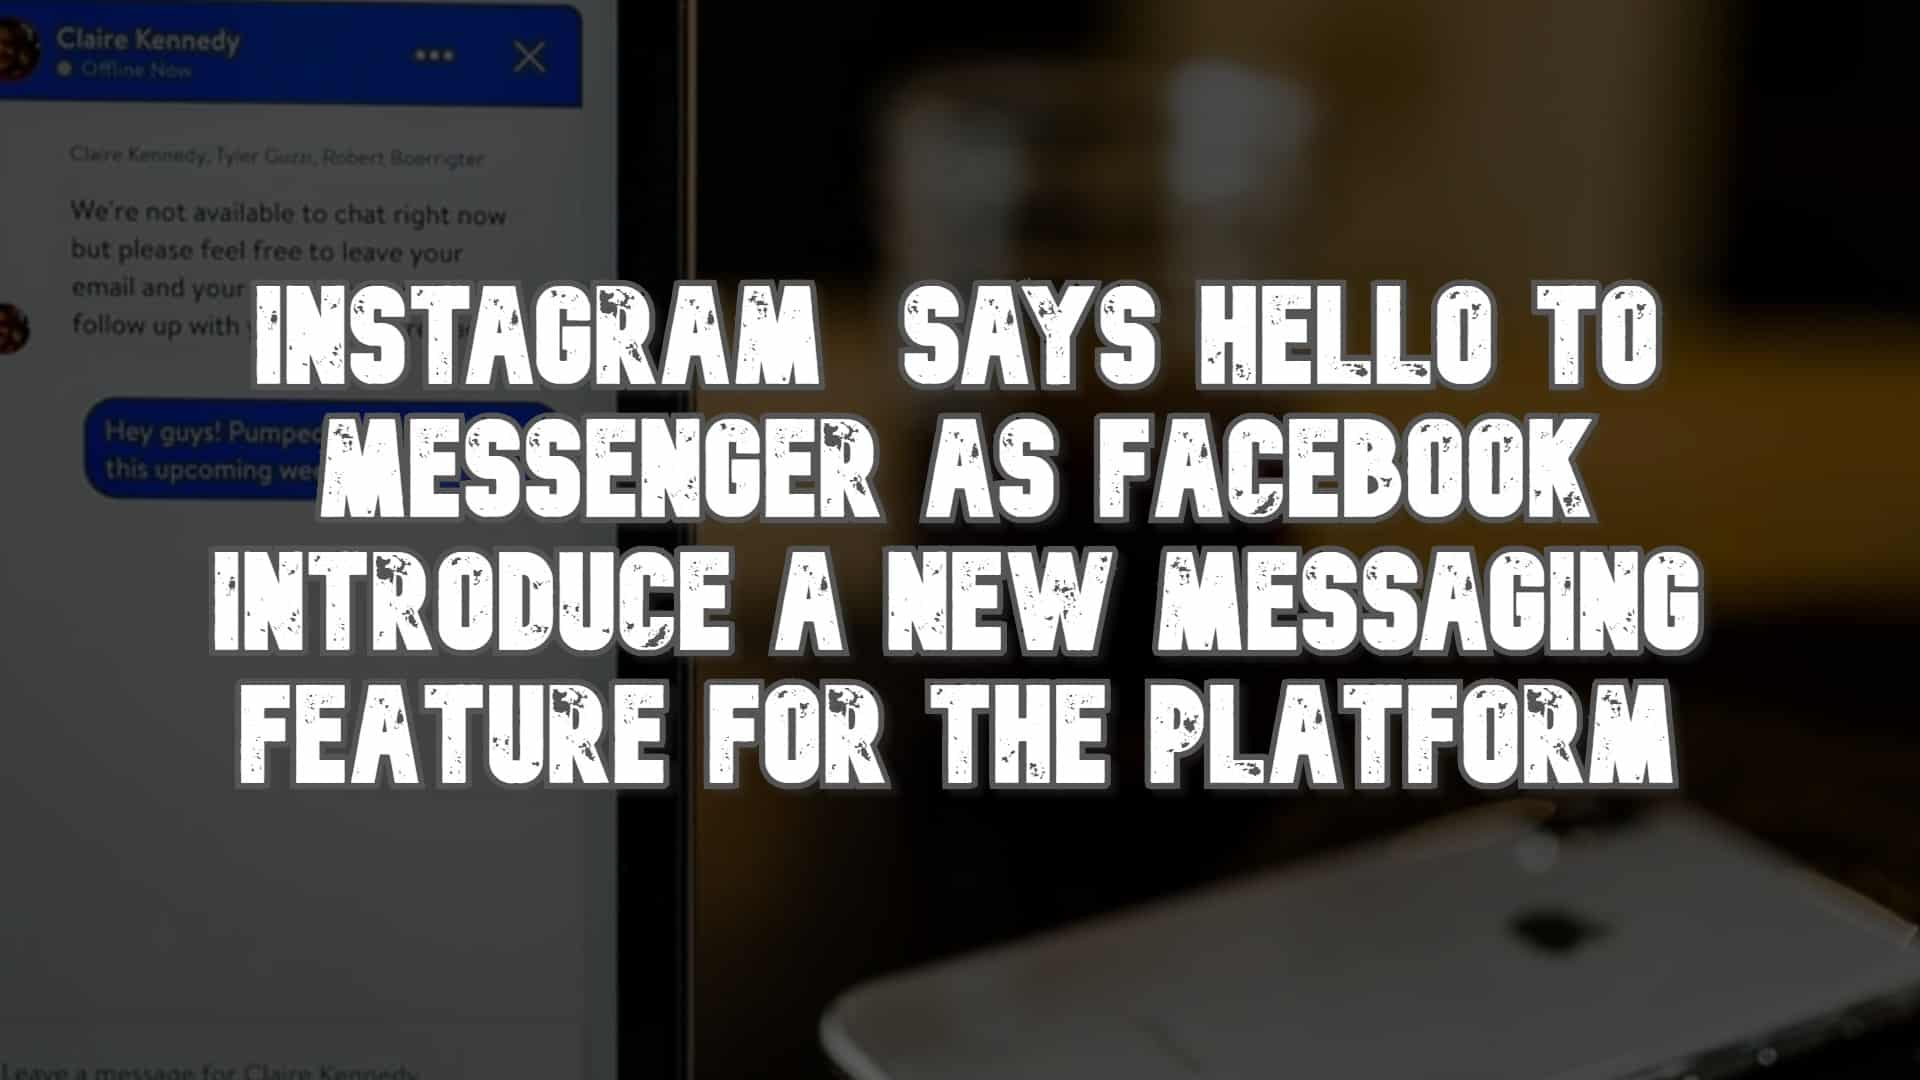 Instagram Says Hello to Messenger As Facebook Introduce a New Messaging Feature for the Platform